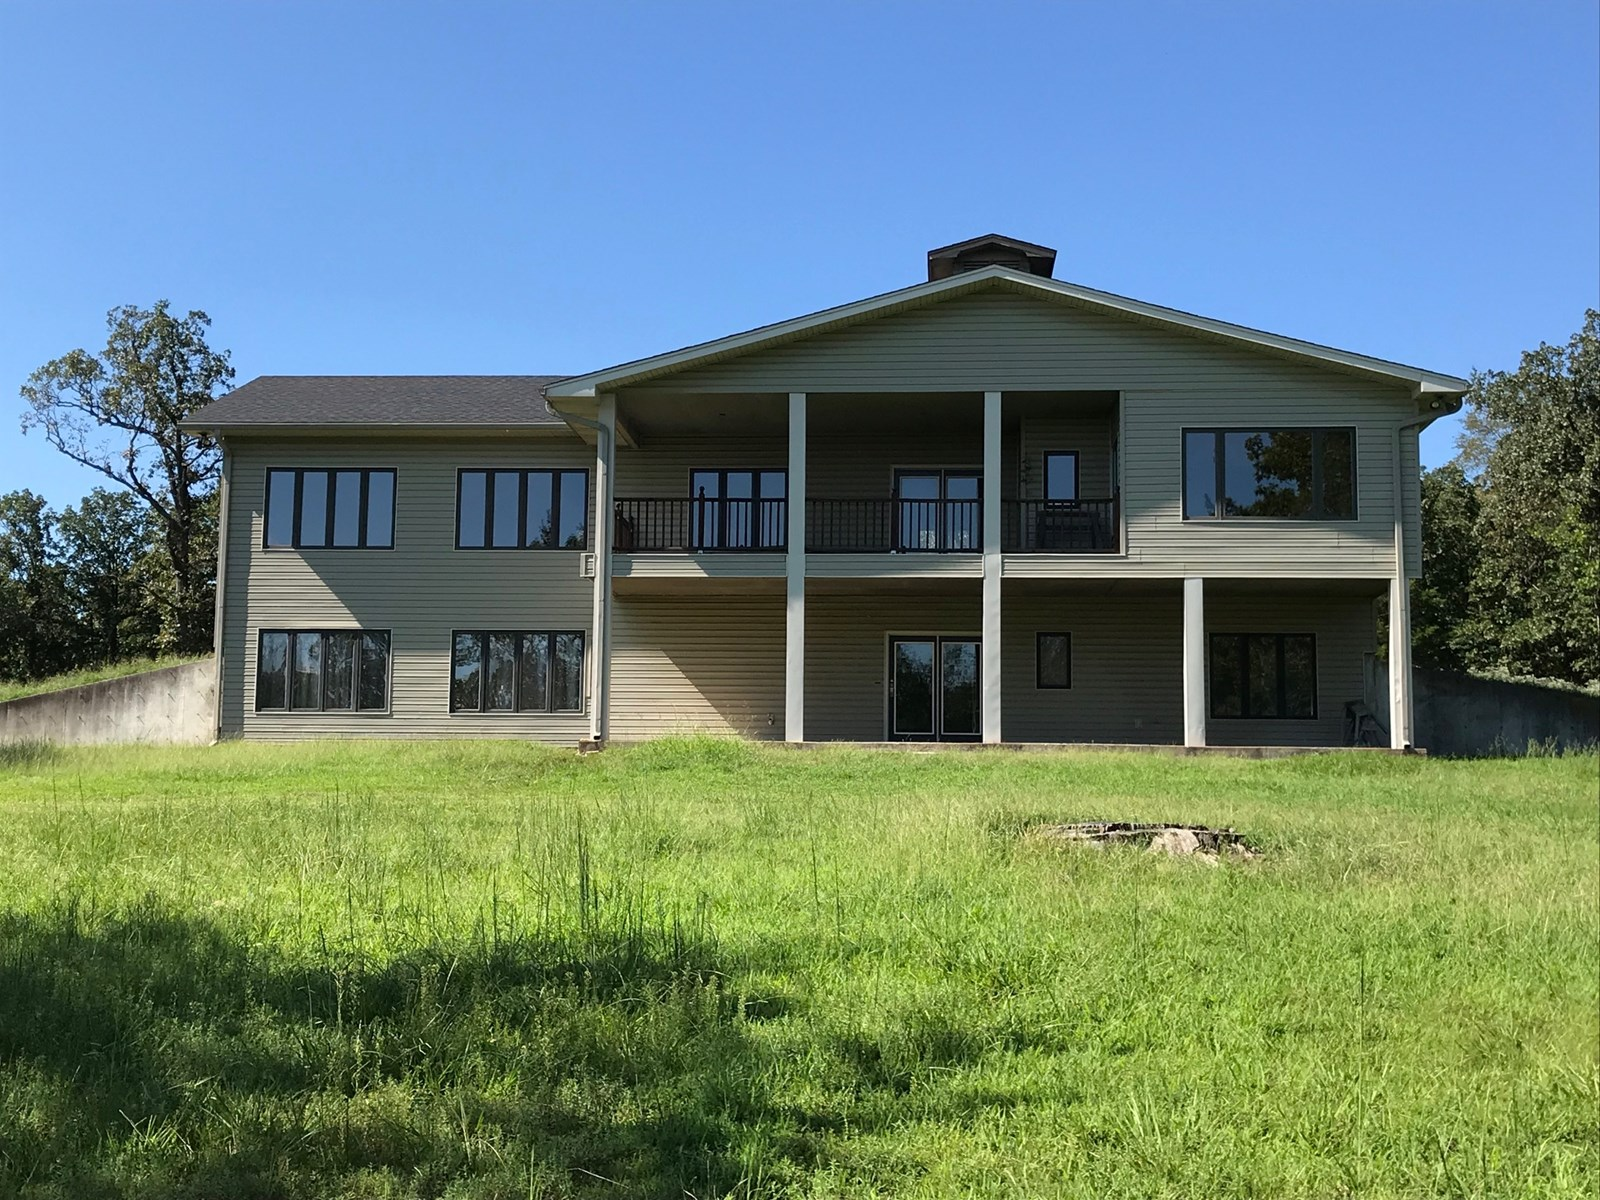 HUNTING, 2 STORY HOME, NE OK, NW AR AREAS, POND, WOODED